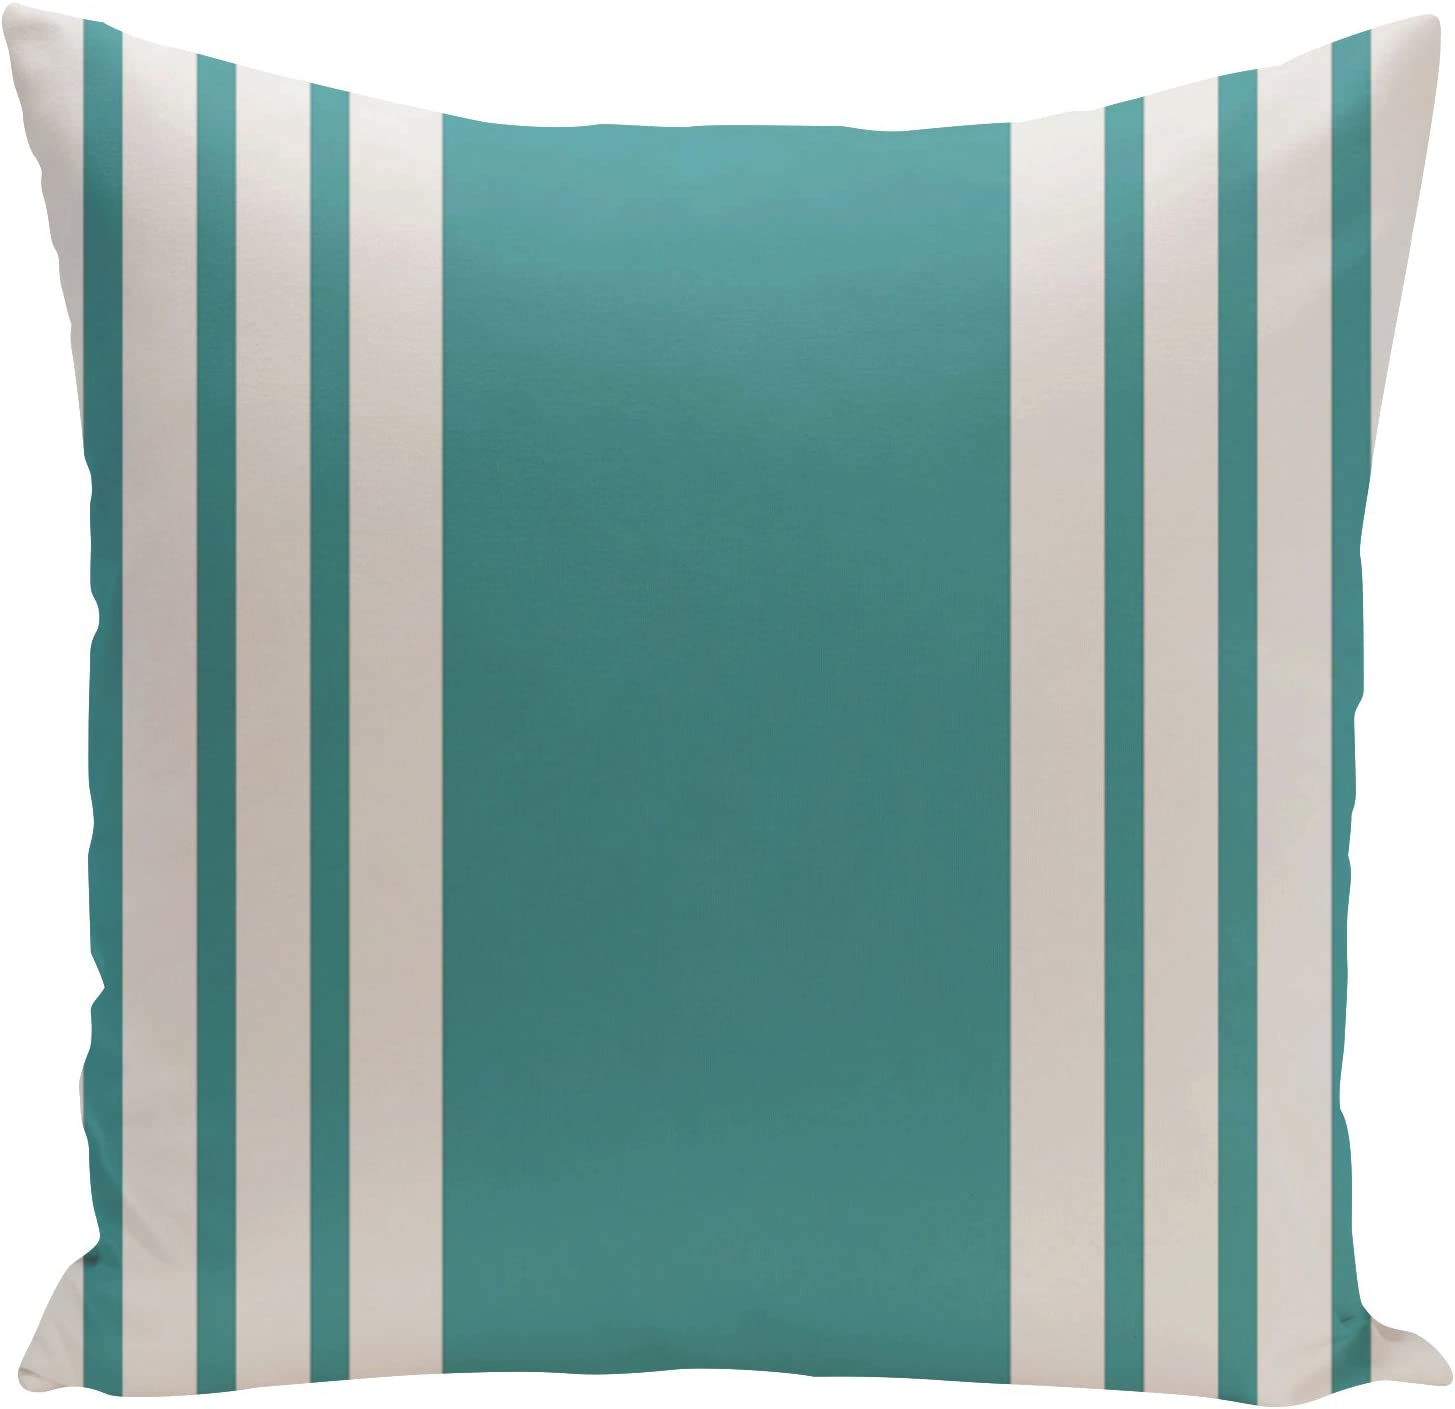 E by design O5PS-N8-Lake_Blue-16 Printed Outdoor Pillow, 16 x 16